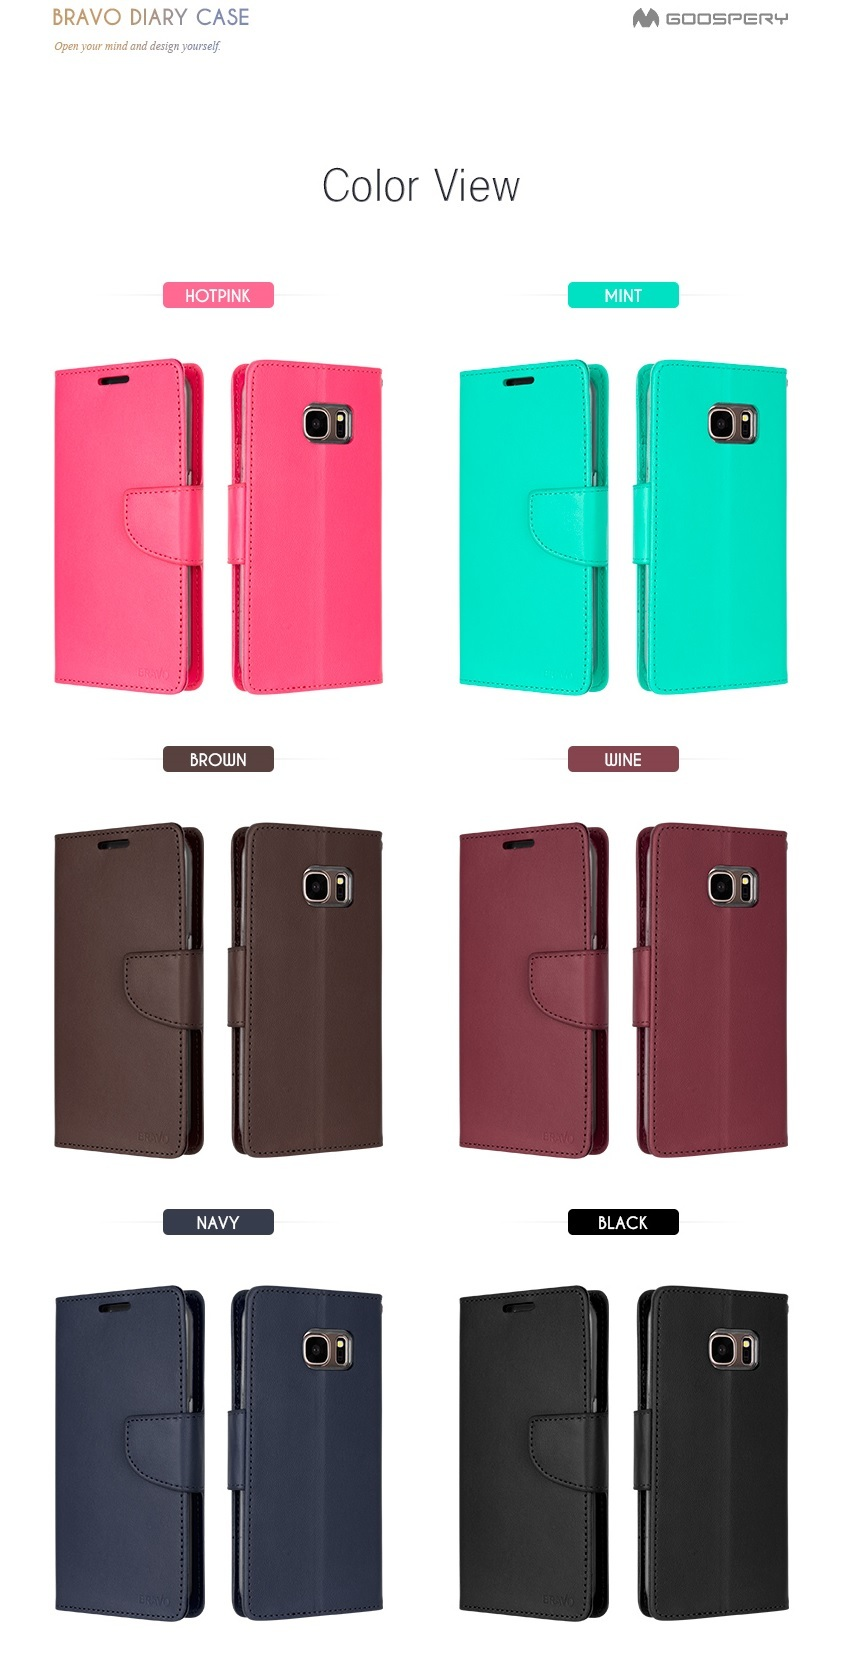 Buy Iphone 7 Case Plus Goospery Mercury Original Samsung Note 5 Bravo Diary Wine Red Casing Coversg Seller Deals For Only S199 Instead Of